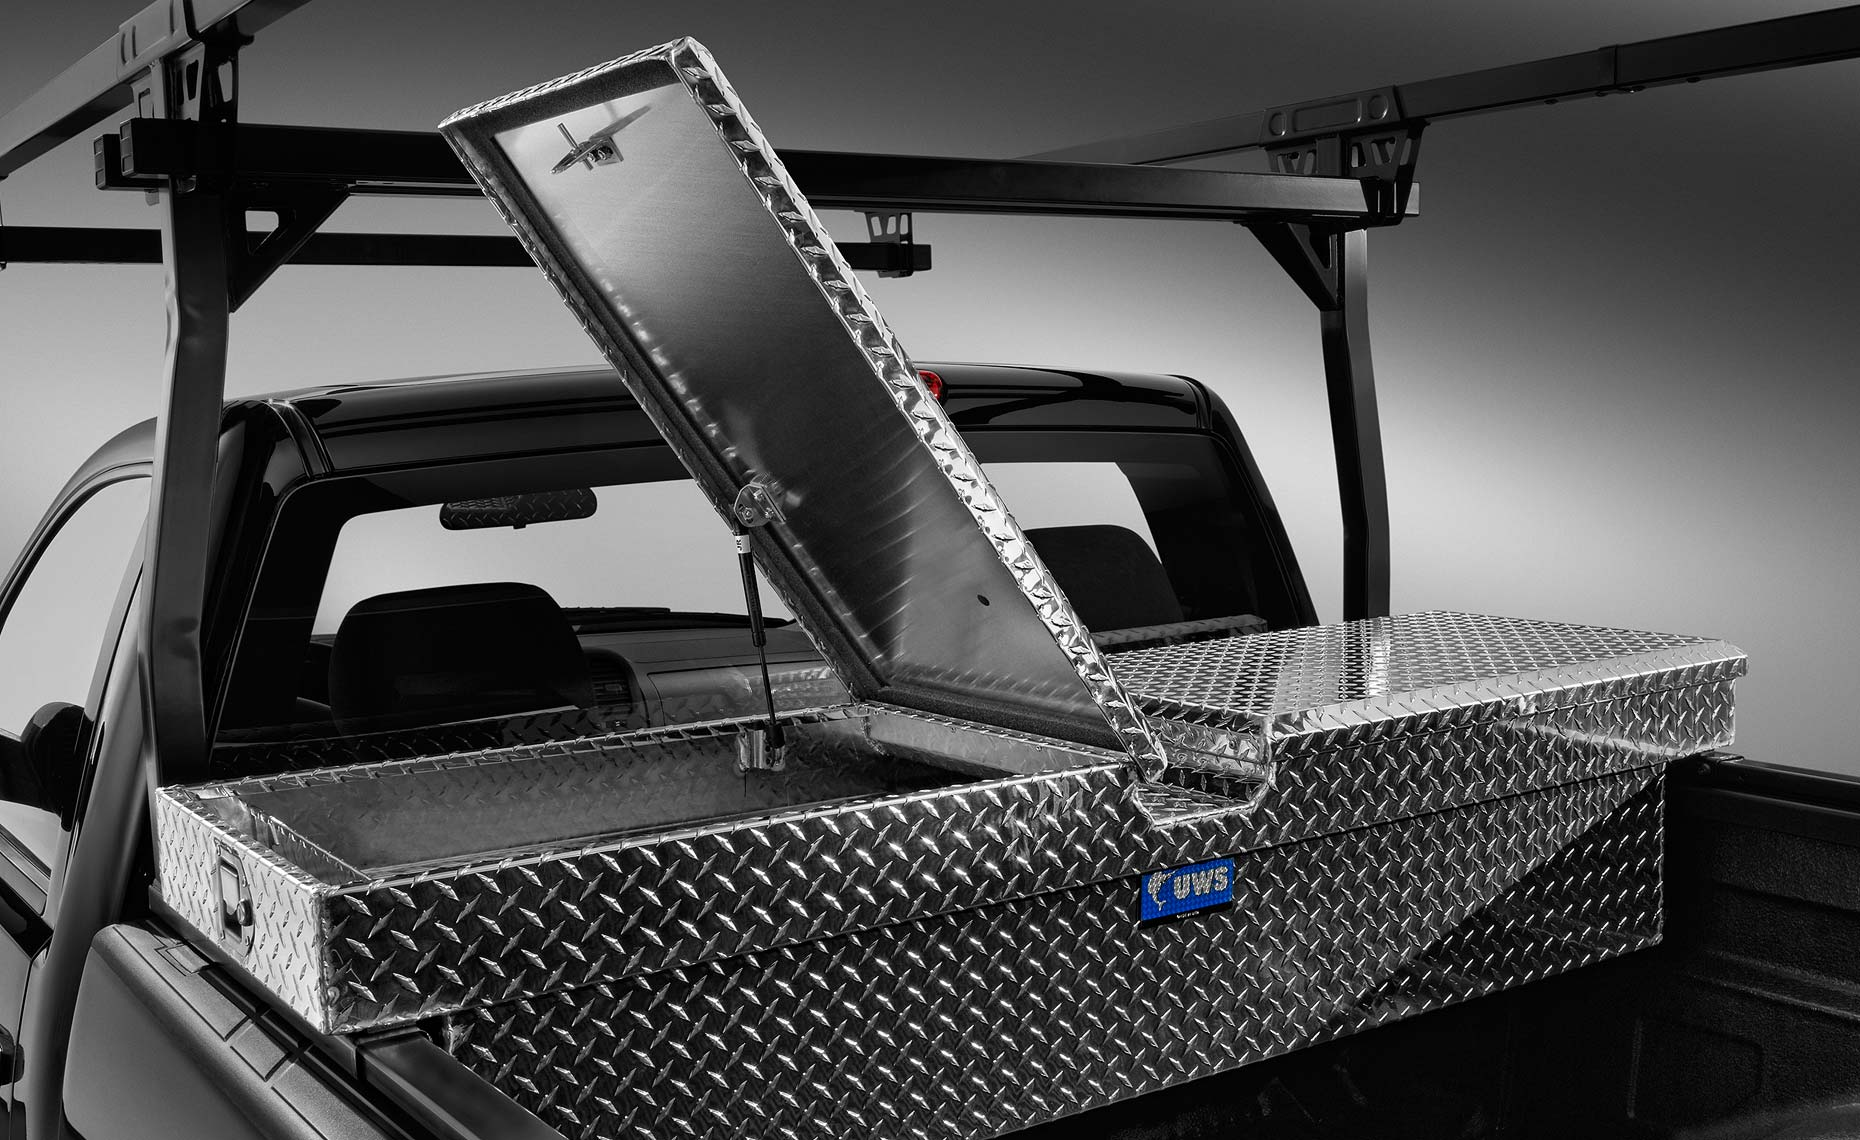 2013 chevy silverado-gull-wing tool box.jpg